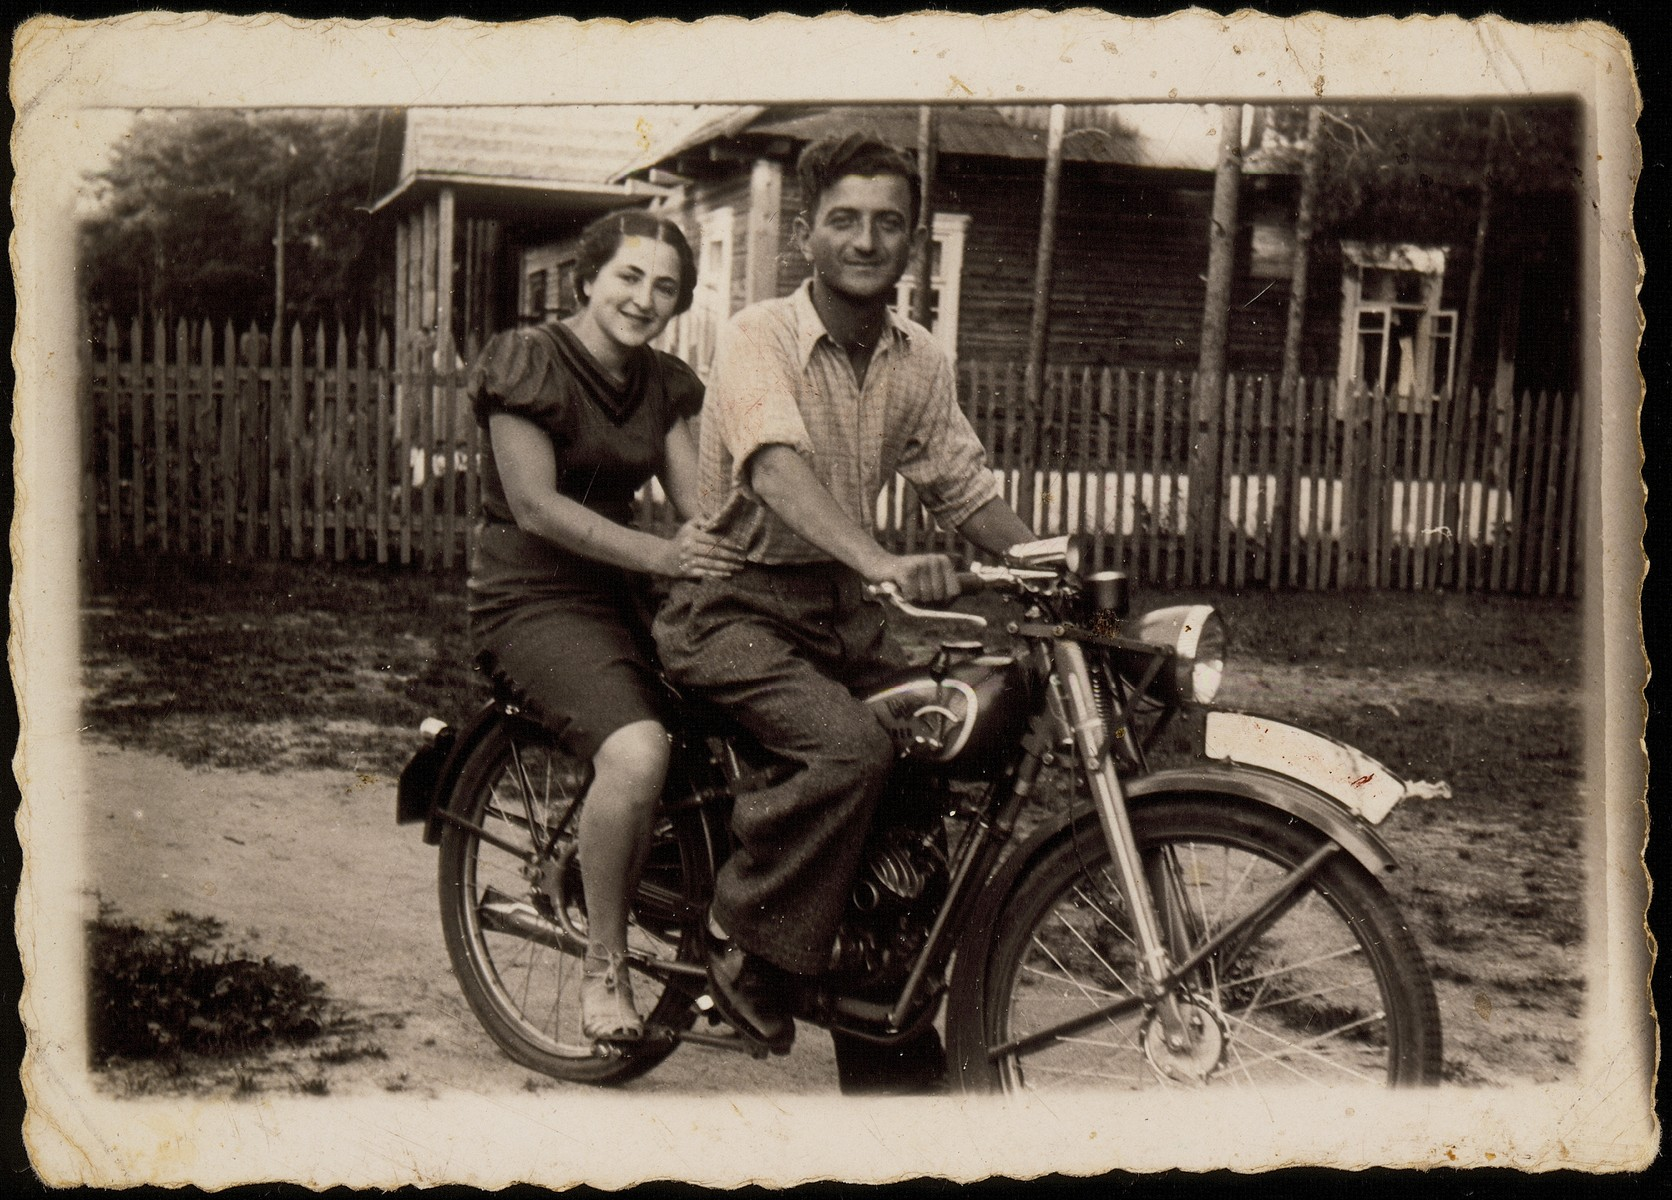 Shabbtai (Shepske) Sonenson takes one of the shtetl's Hebrew teachers for a ride on his new motorcycle.